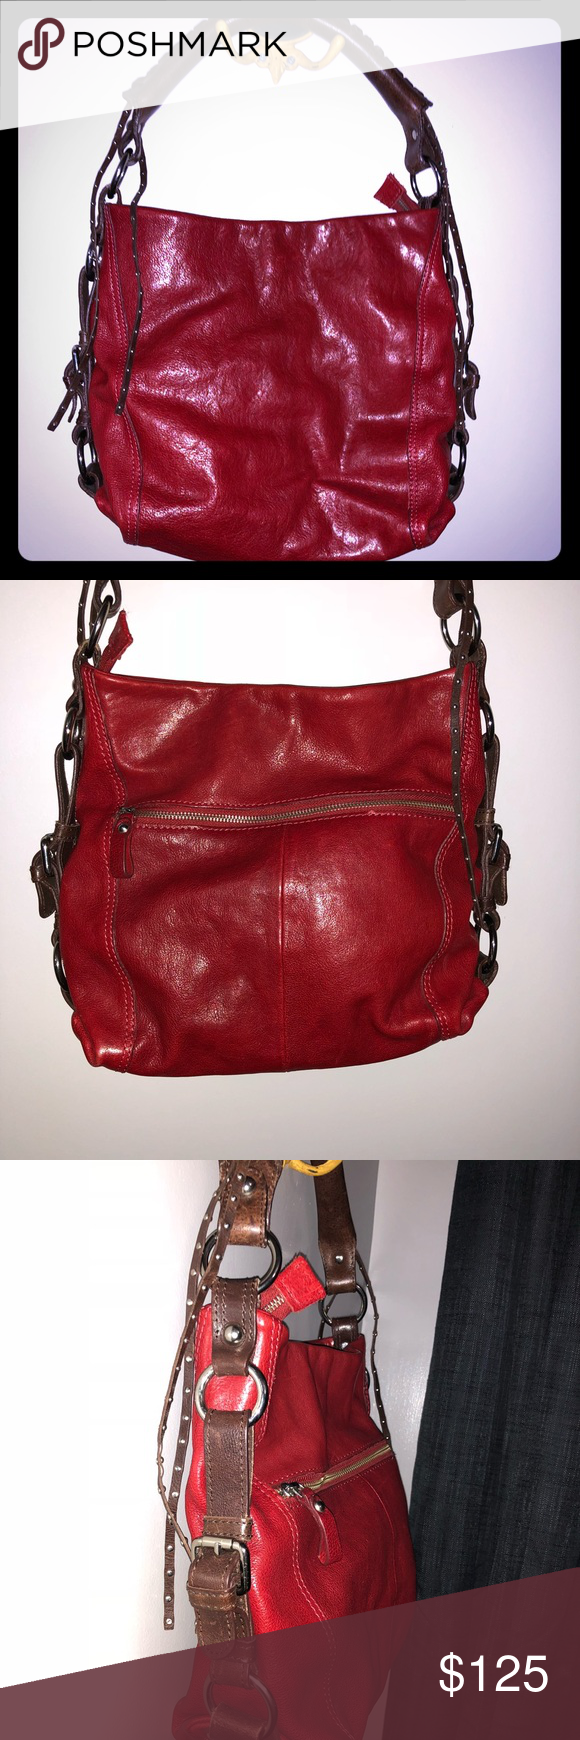 293ae38071c4 Tano like new bag Crimson leather bag with thick rounded handle for comfort  any way you carry it. Tano Bags Shoulder Bags